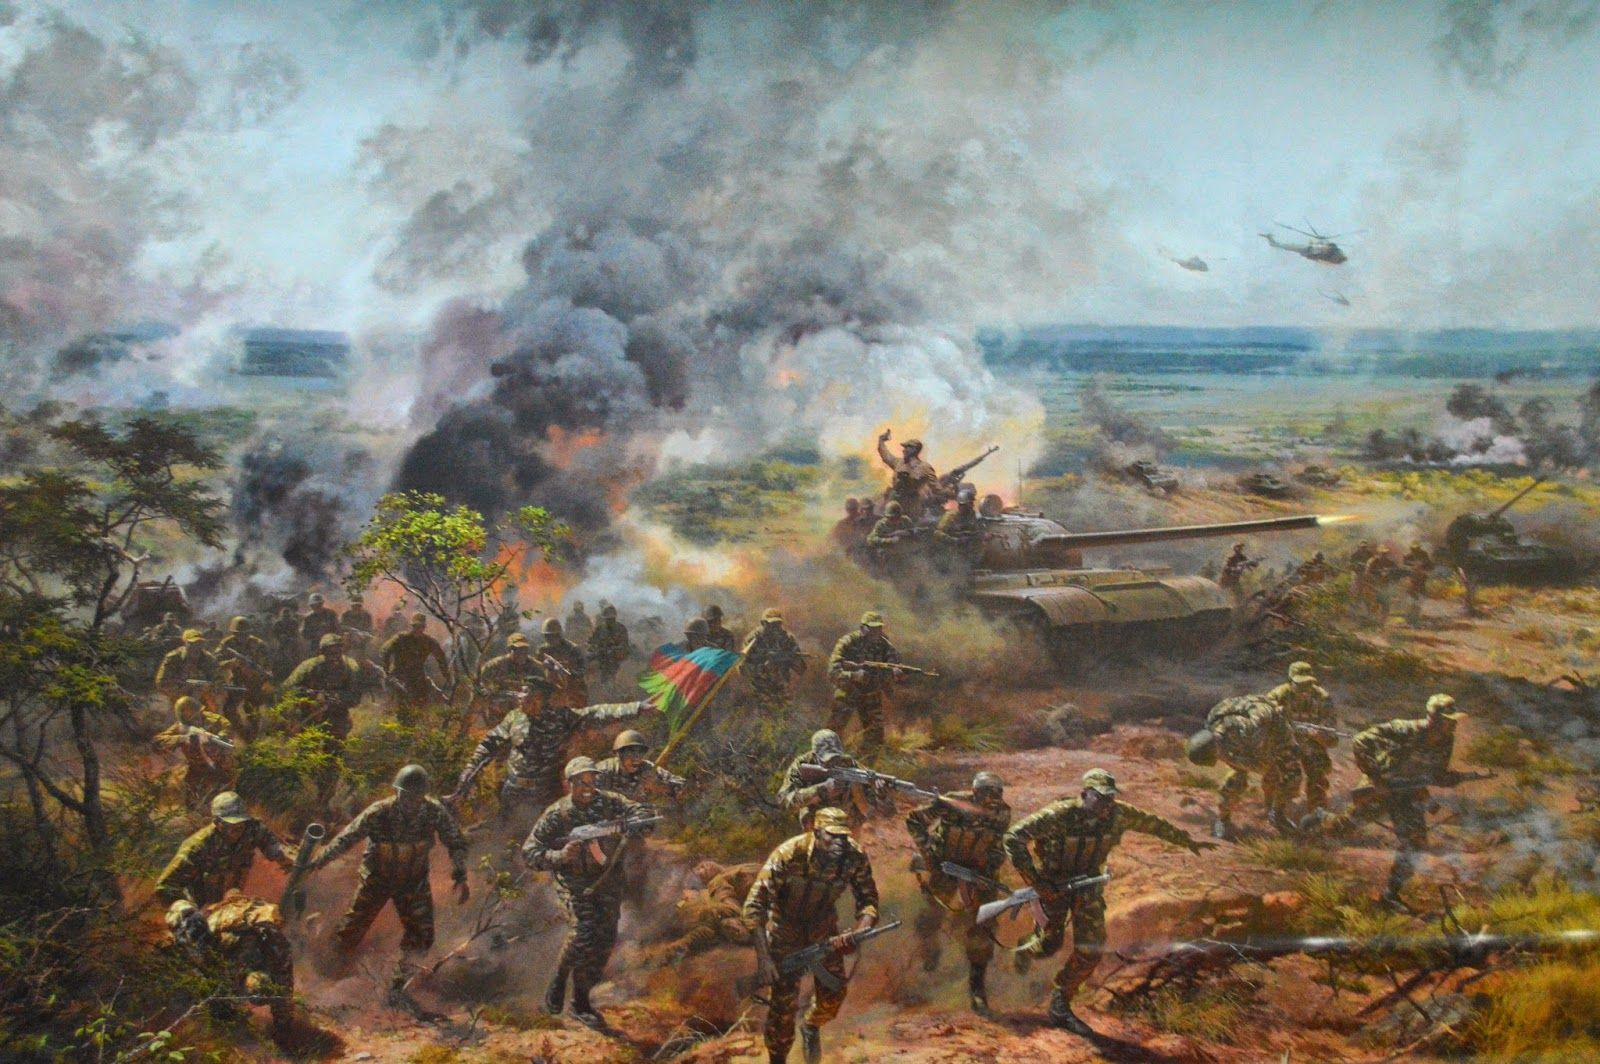 angolan civil war Angolan civil war (1975-2002): a timeline of events  5 august 1975: south  african troops invade southern angola with armoured vehicles.